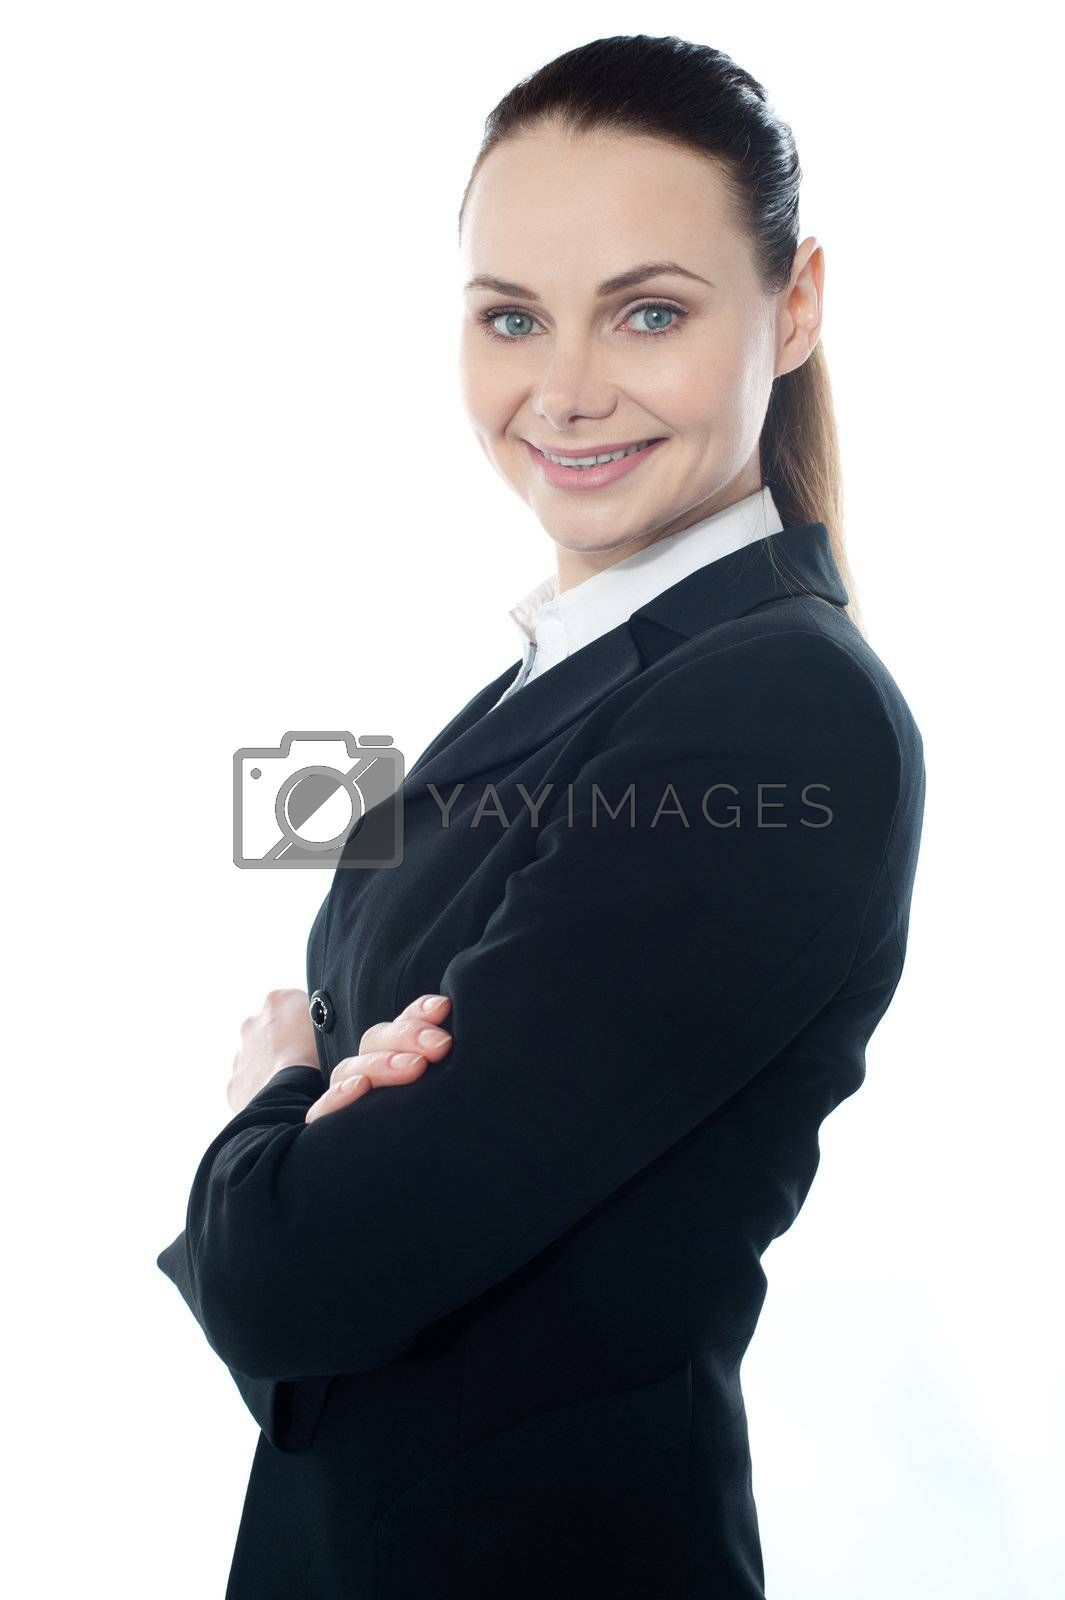 Closeup shot of successful businesswoman posing with crossed arms